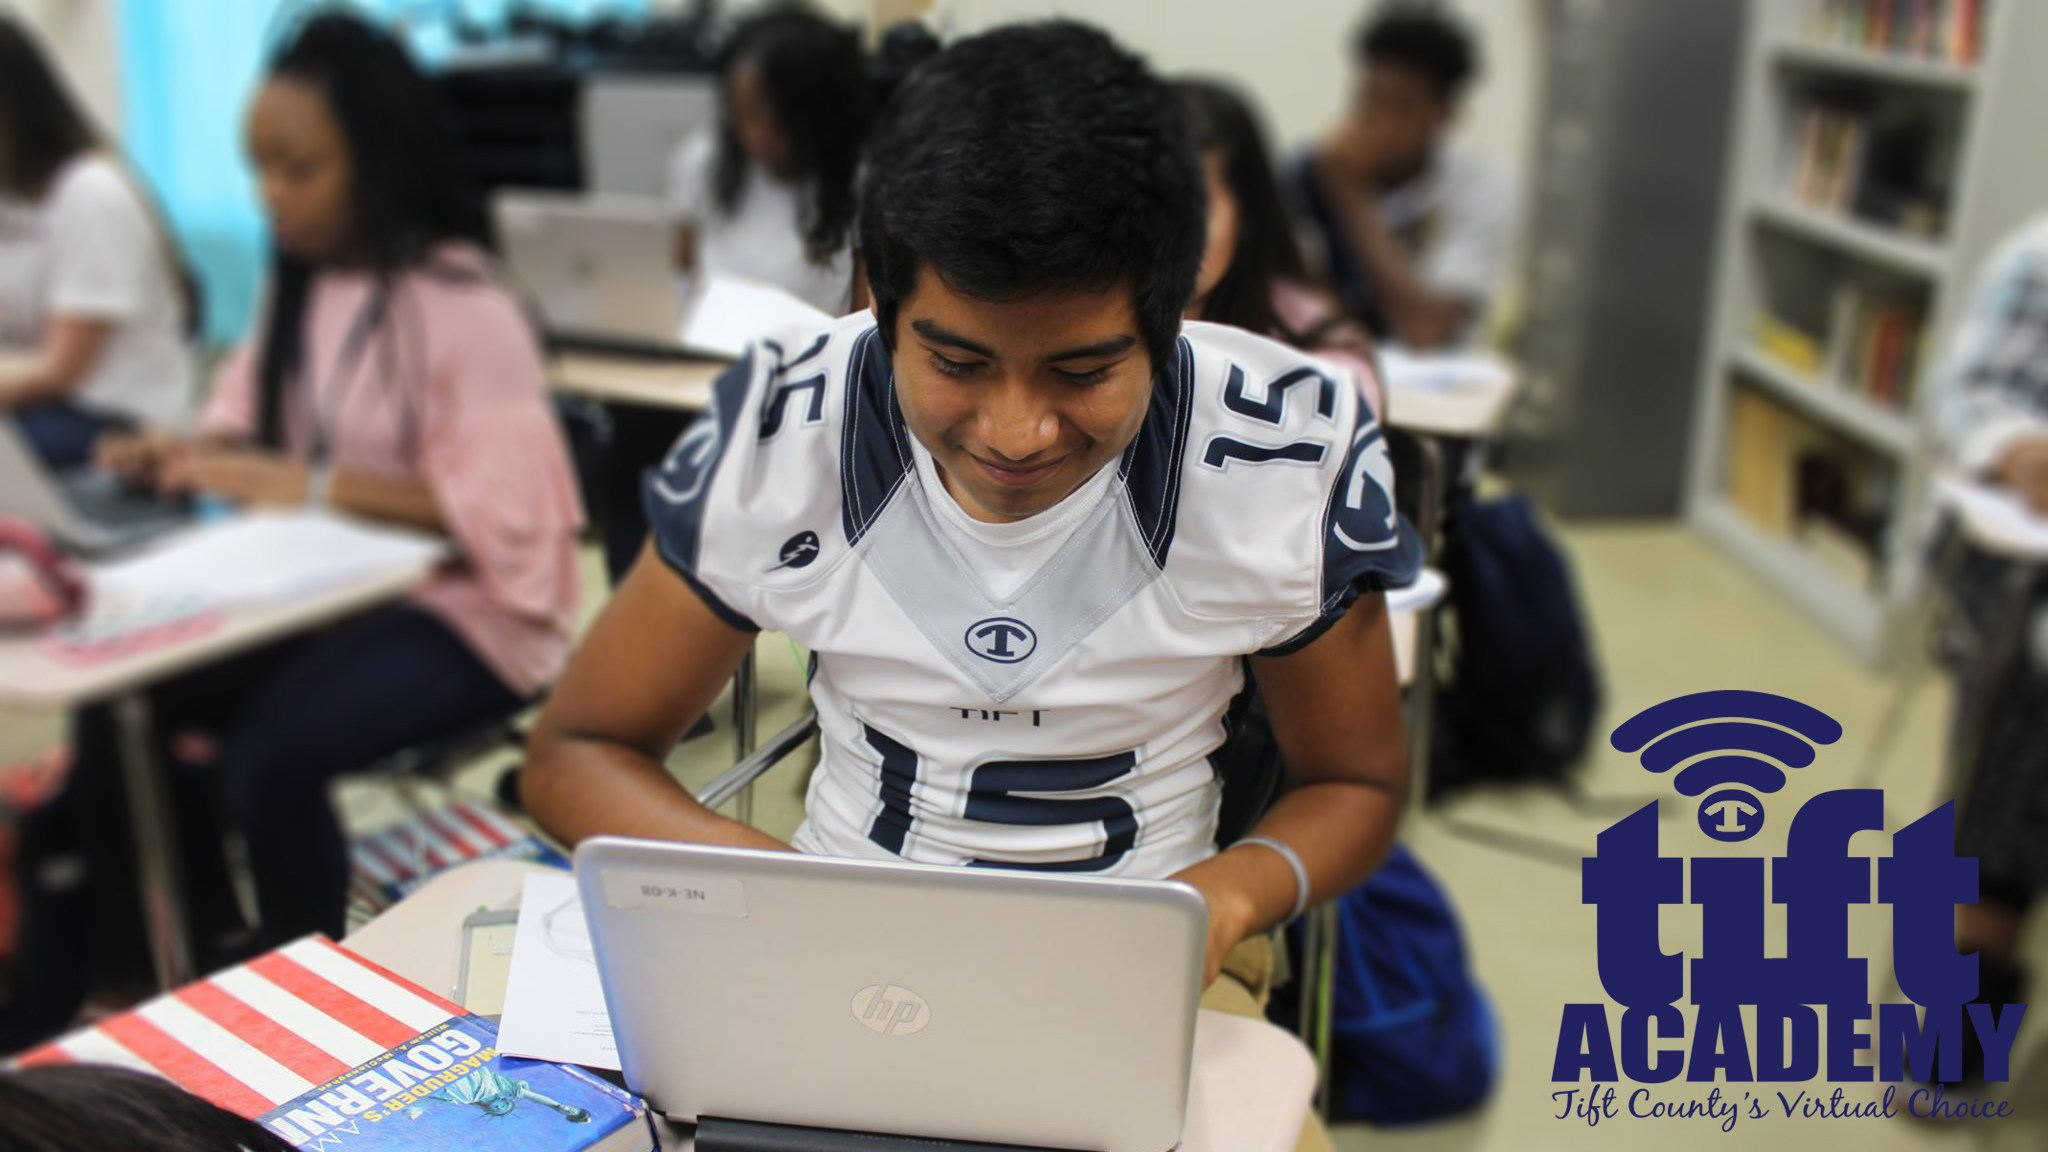 Football Player Working on Computer